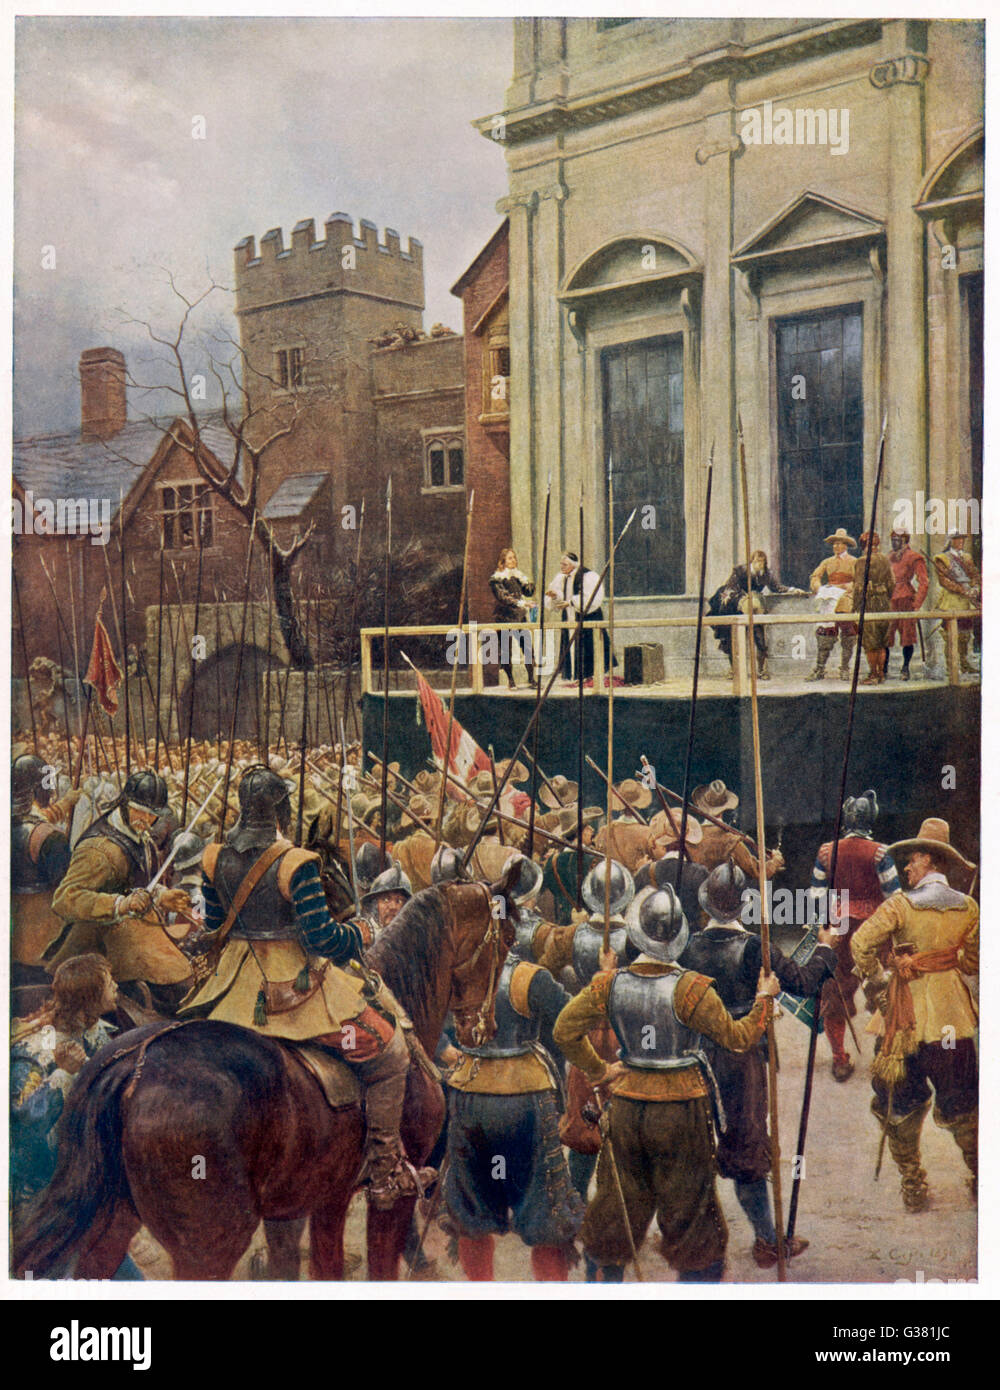 Charles I on the scaffold  at Whitehall         Date: 30 January 1649 - Stock Image